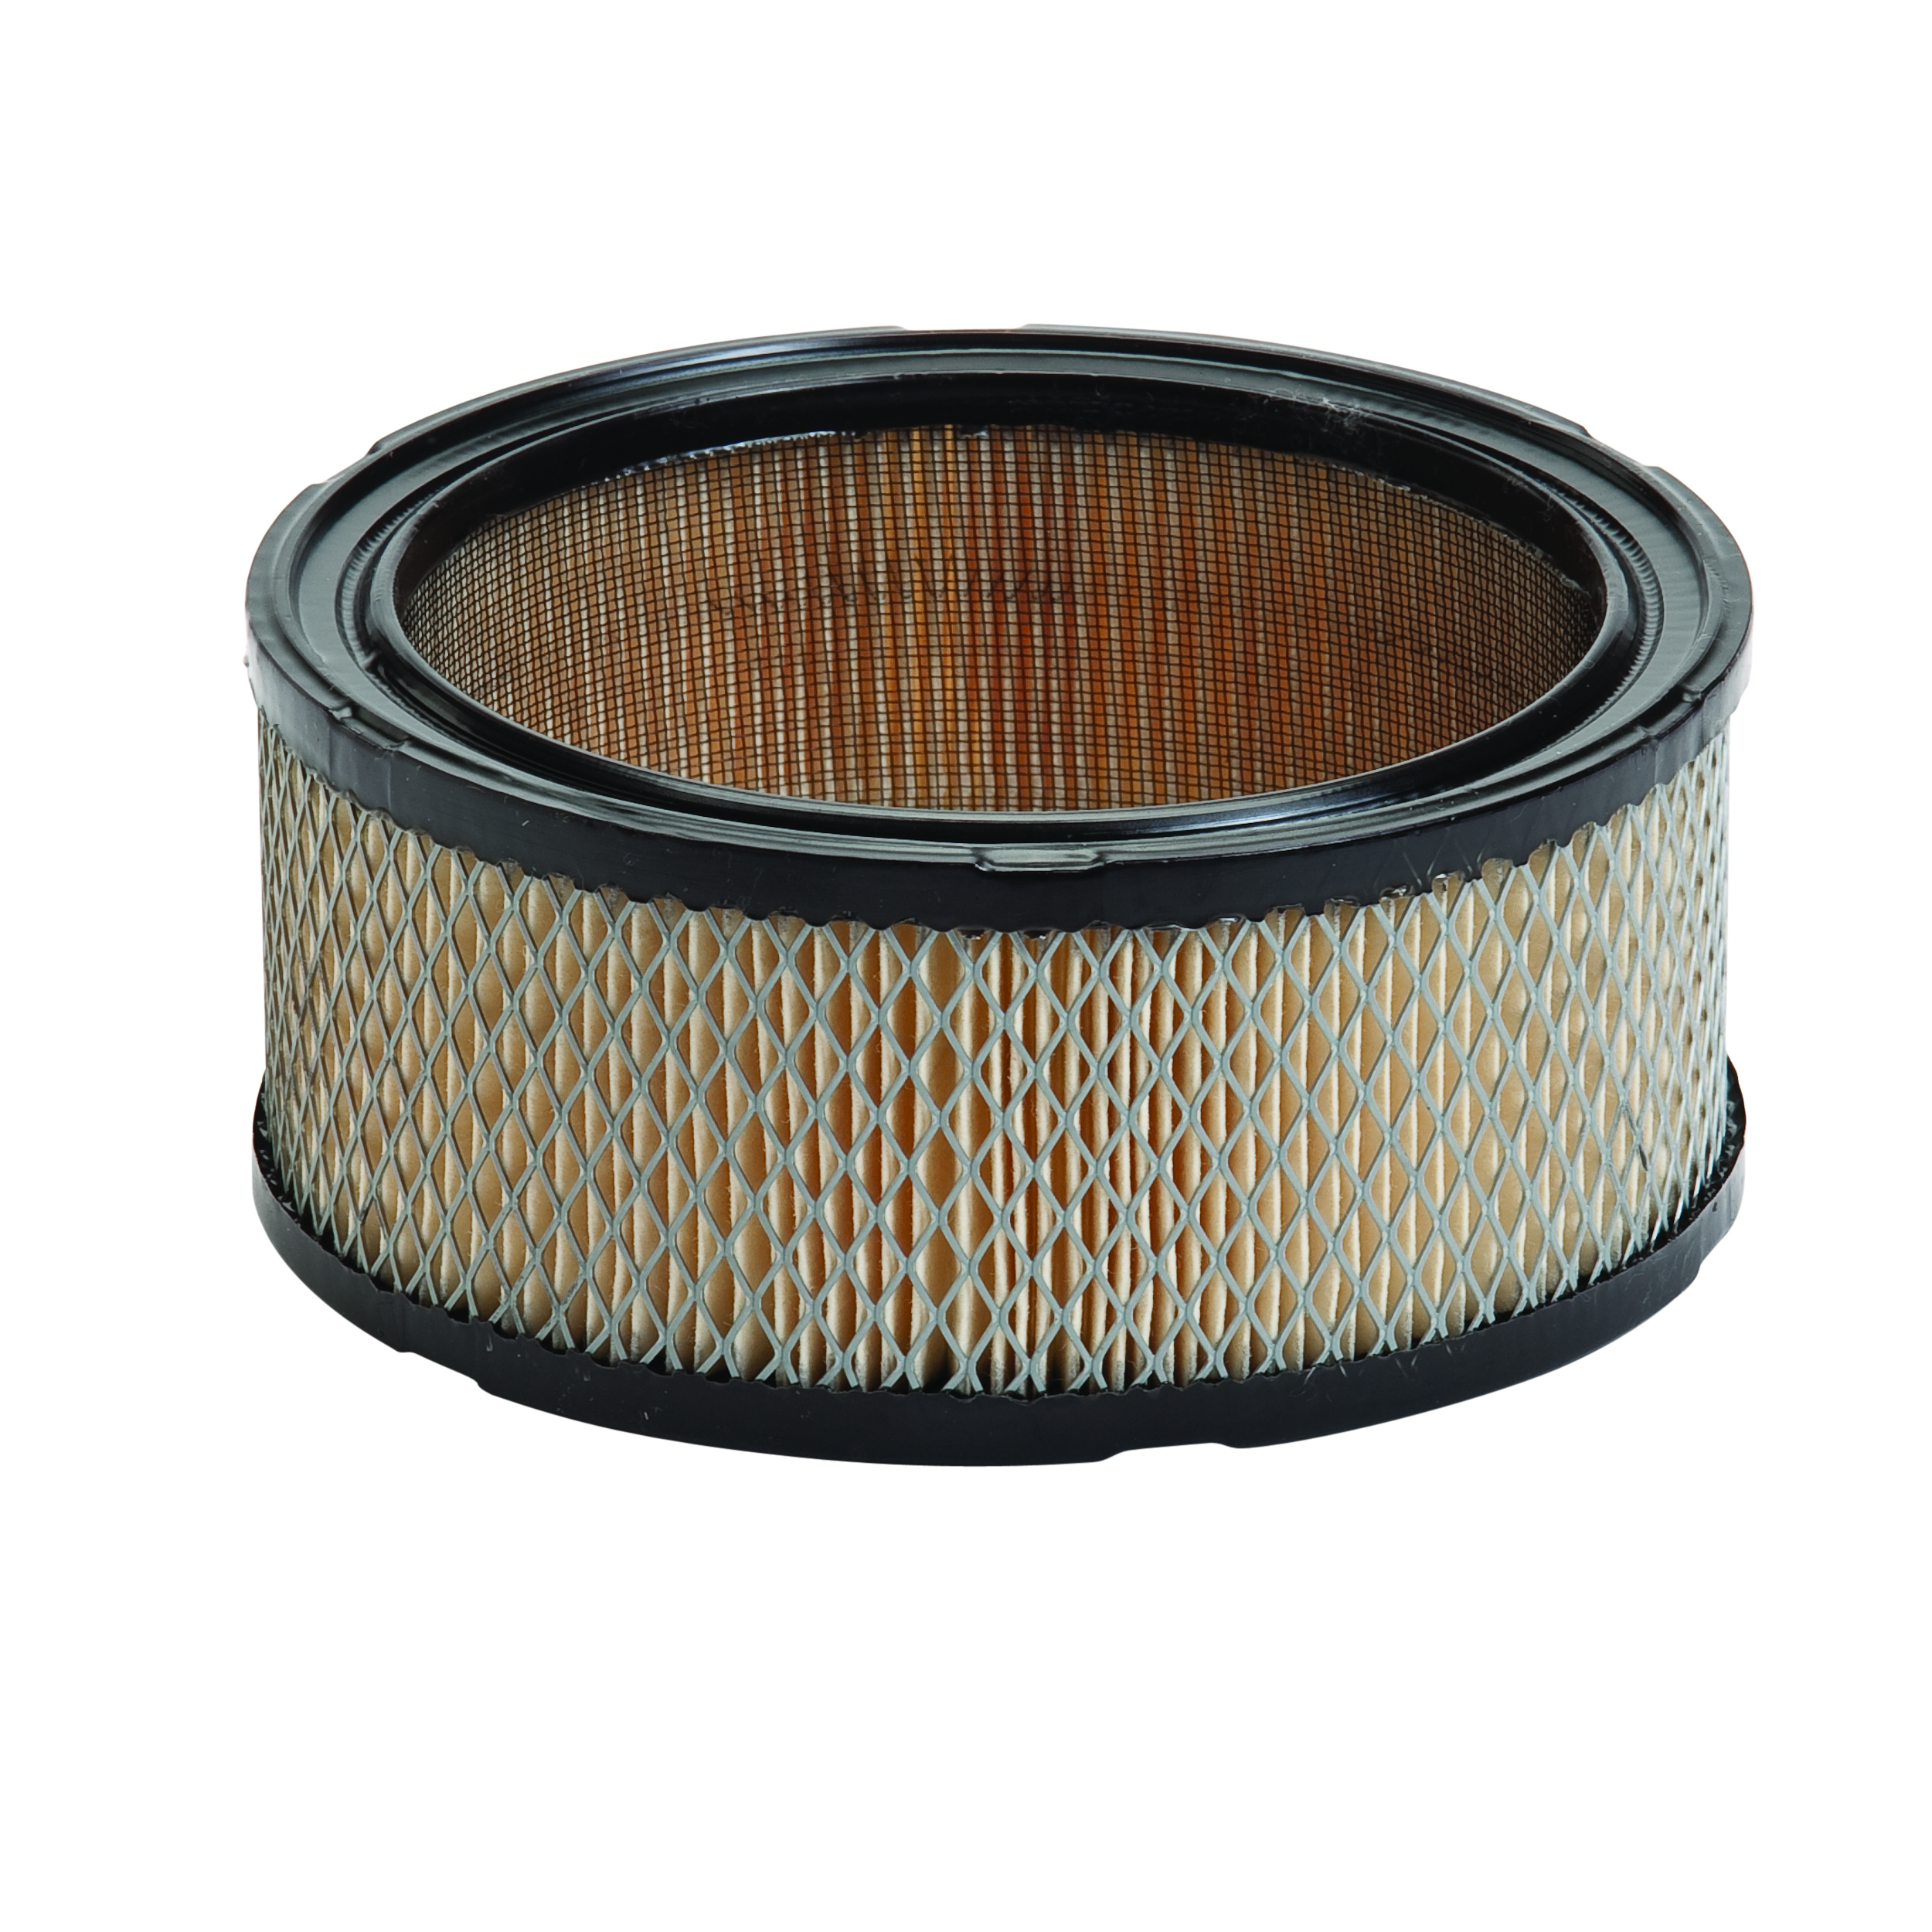 Paper Air Filter : Replacement air filter for kohler paper filters s